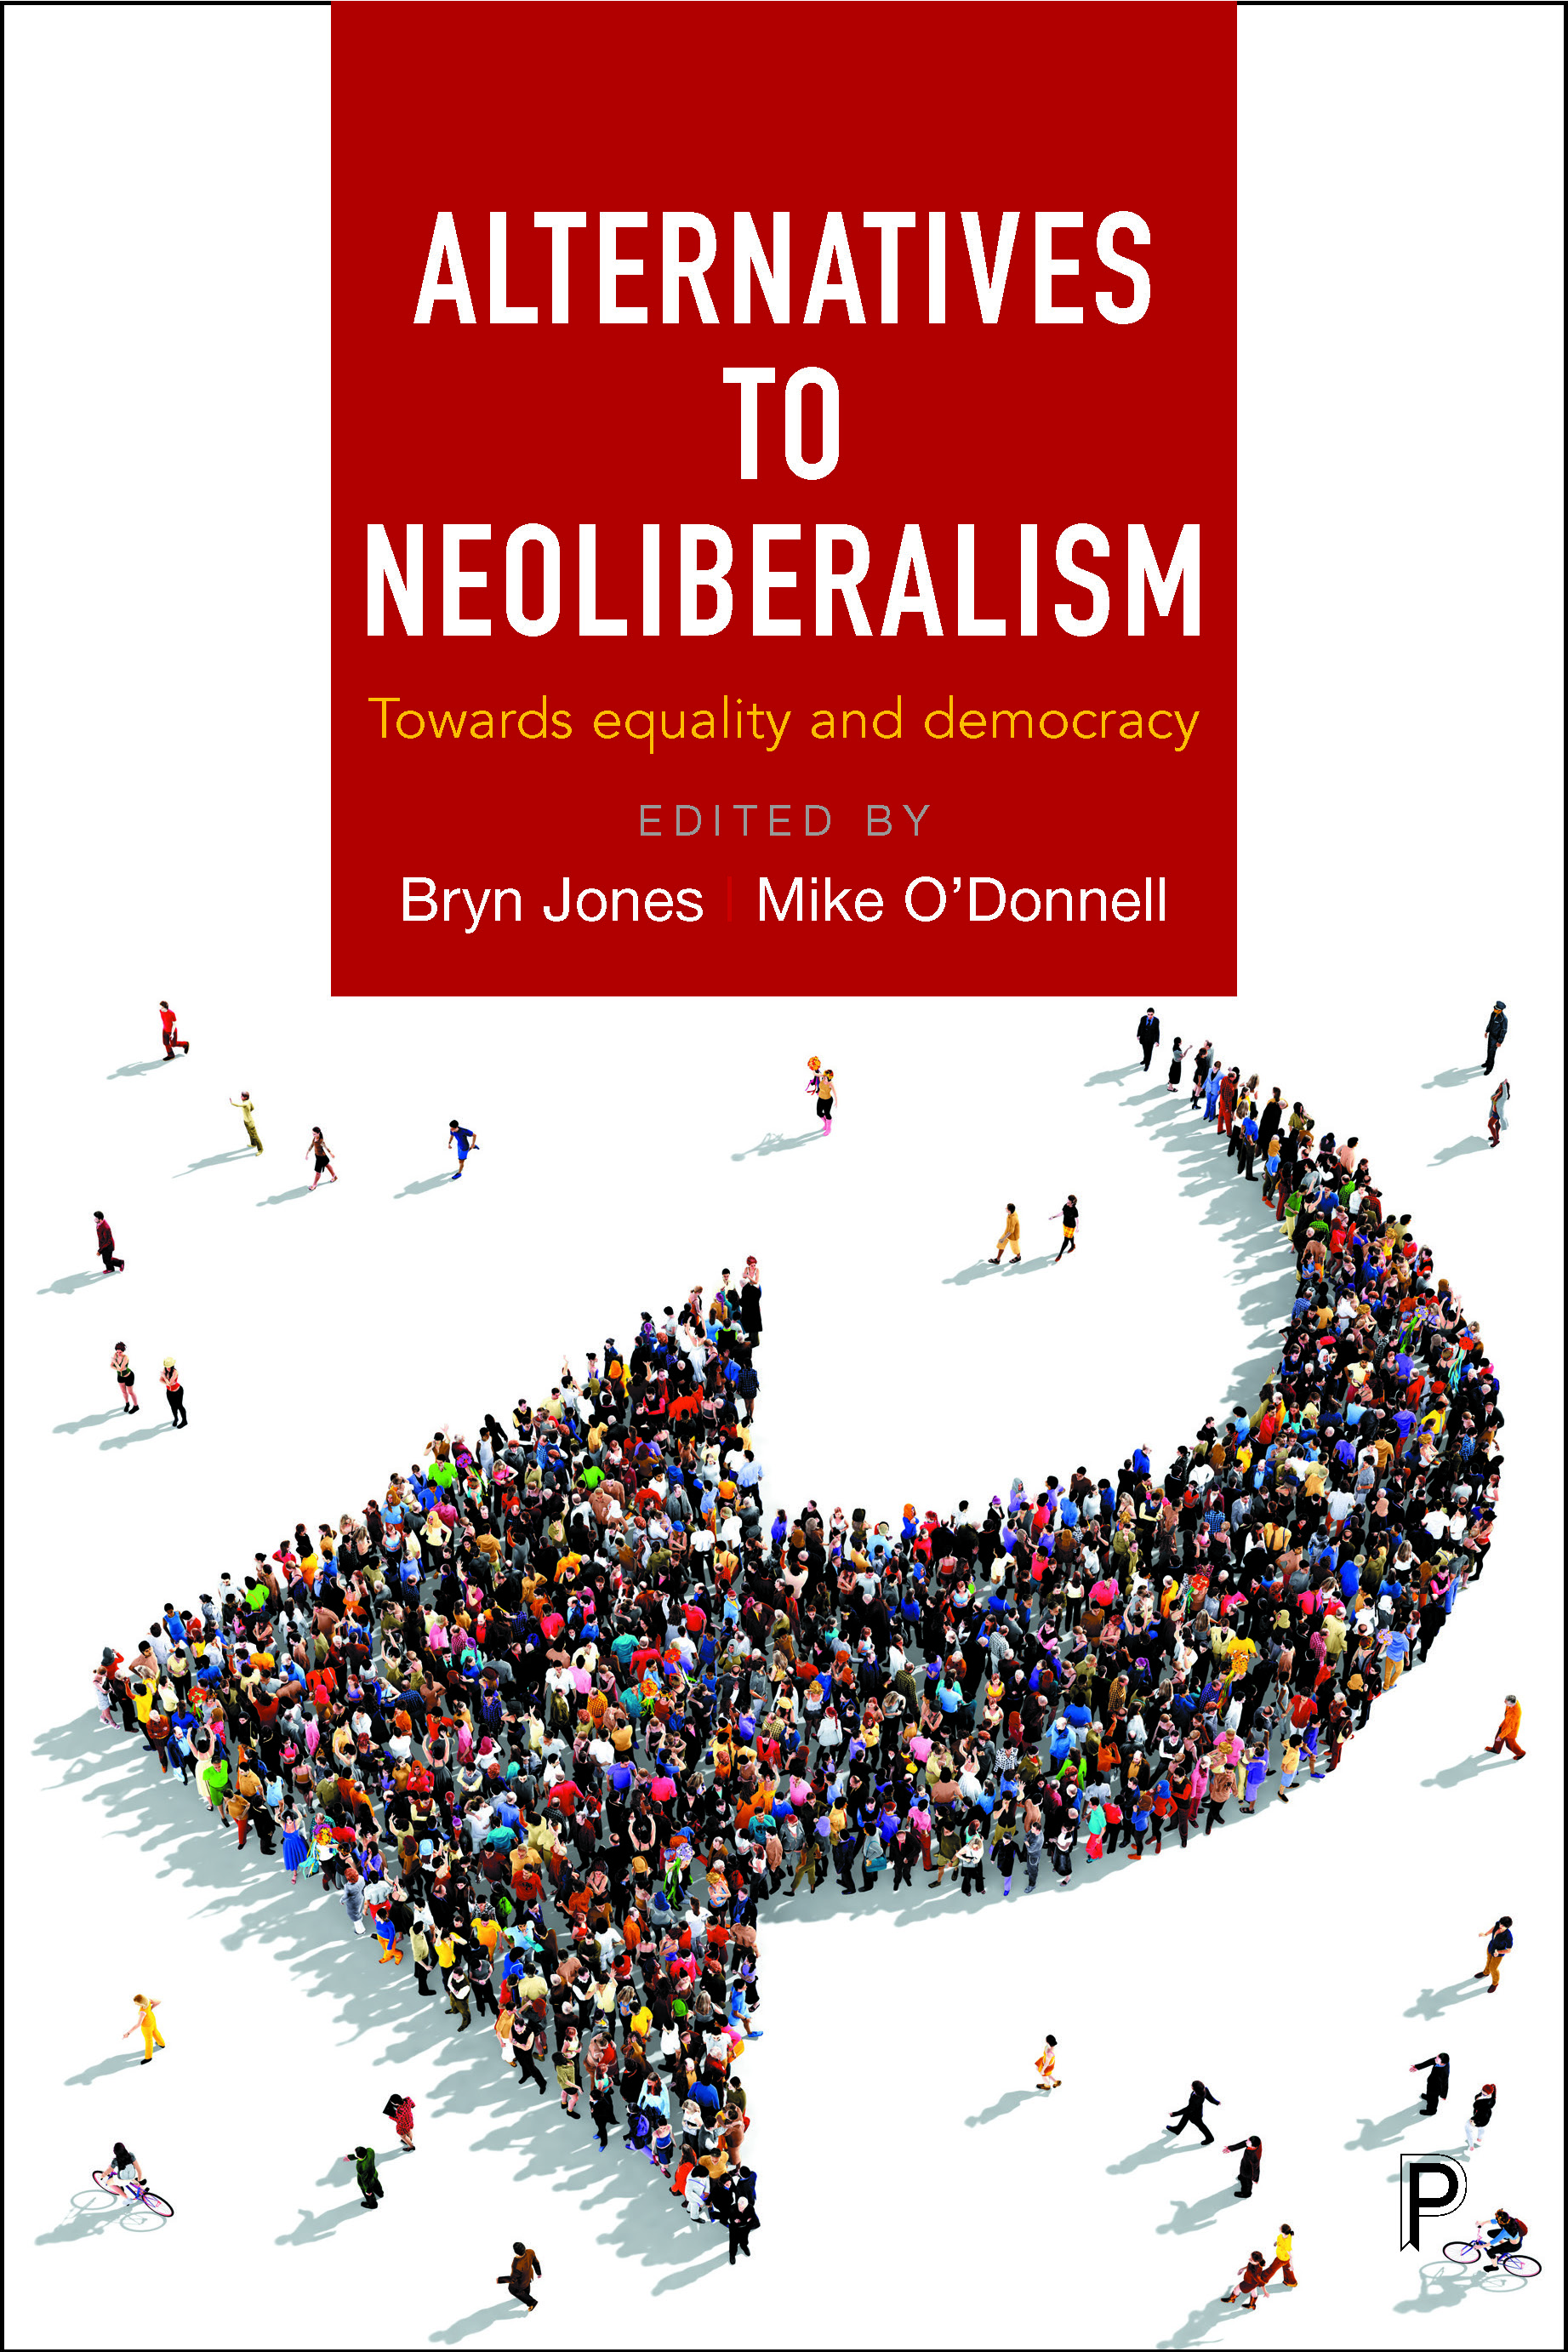 Jones_Alternatives to neoliberalism [FC]